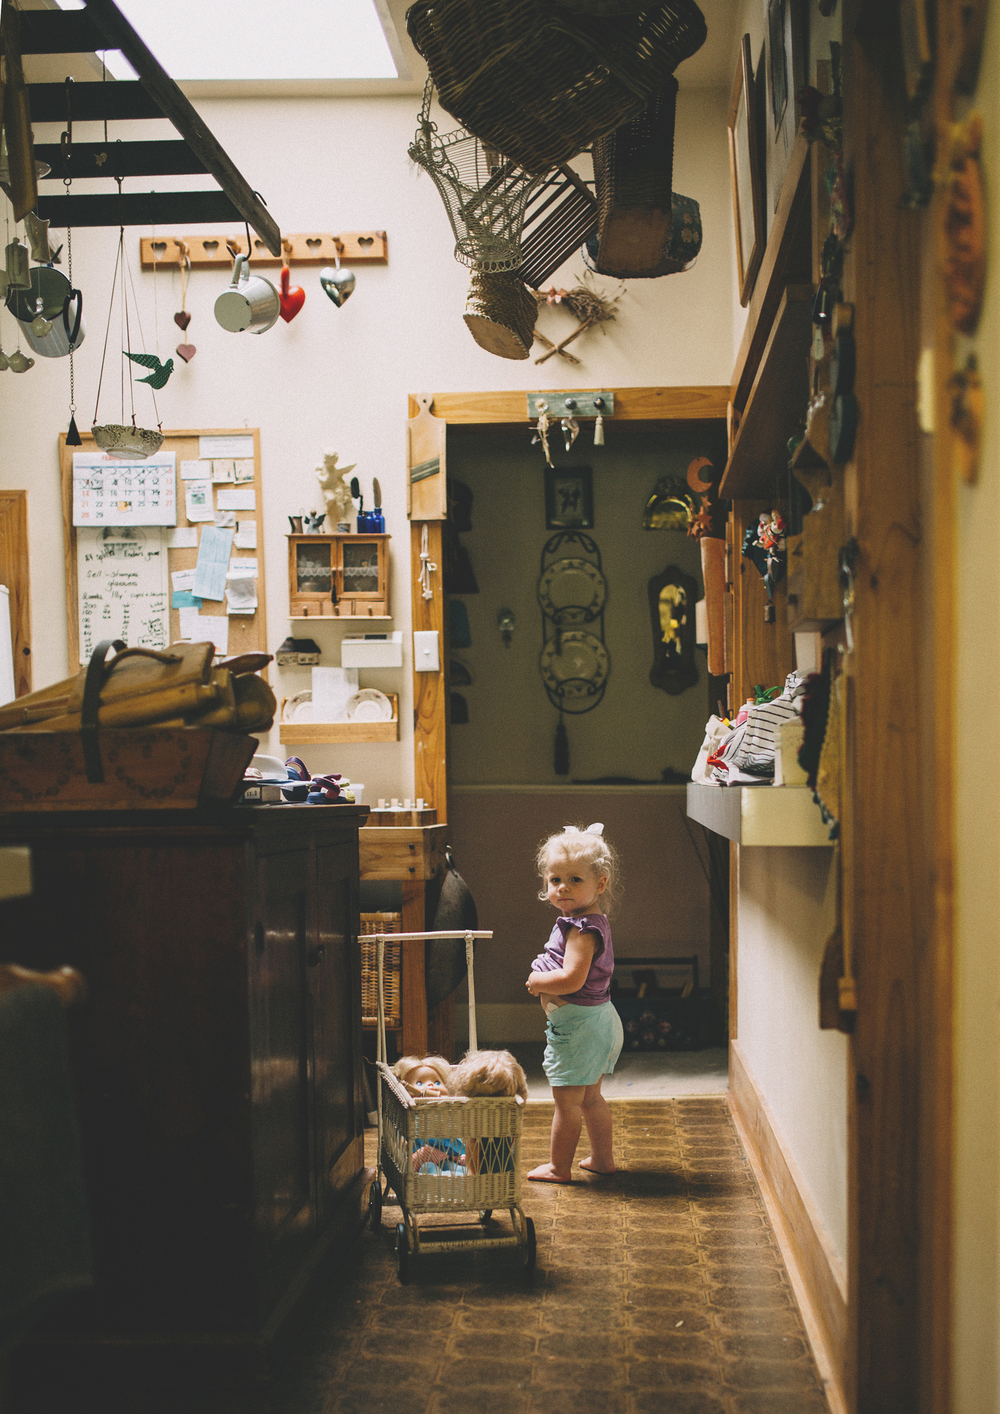 Little toddler in the kitchen - Unposed Children's Photography Melbourne